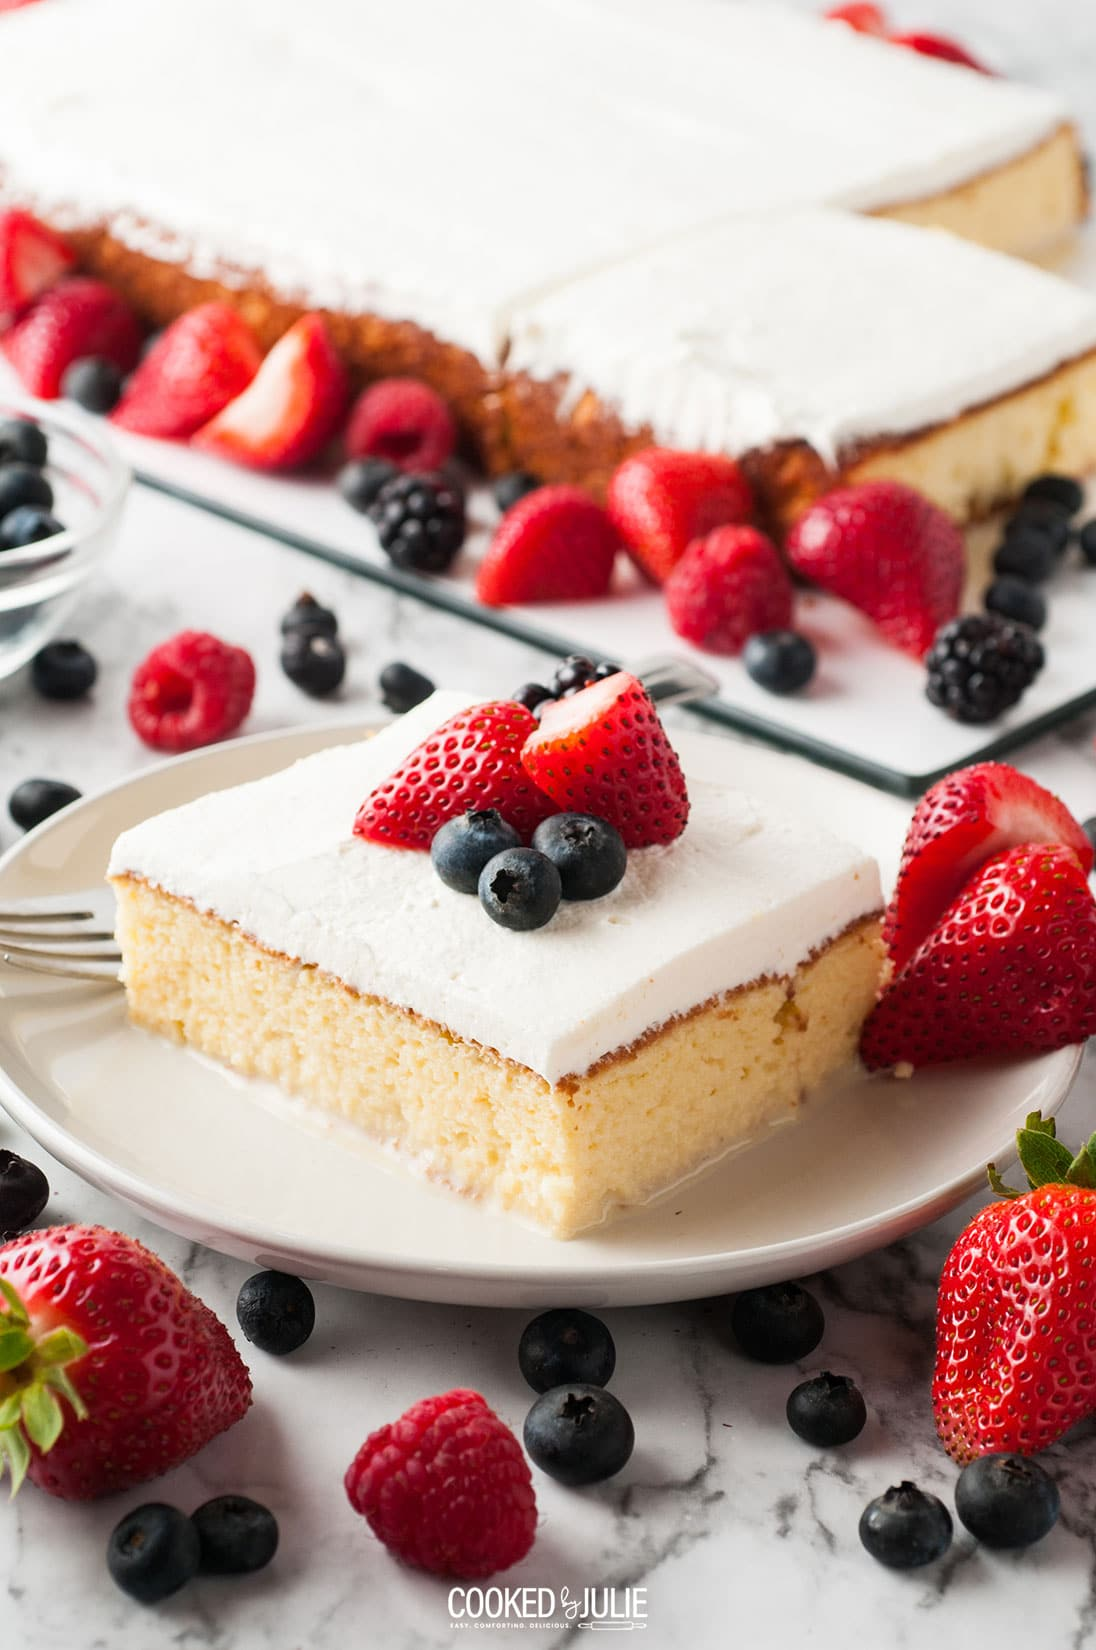 Superb Pastel De Tres Leches Cake Video Cooked By Julie Funny Birthday Cards Online Kookostrdamsfinfo